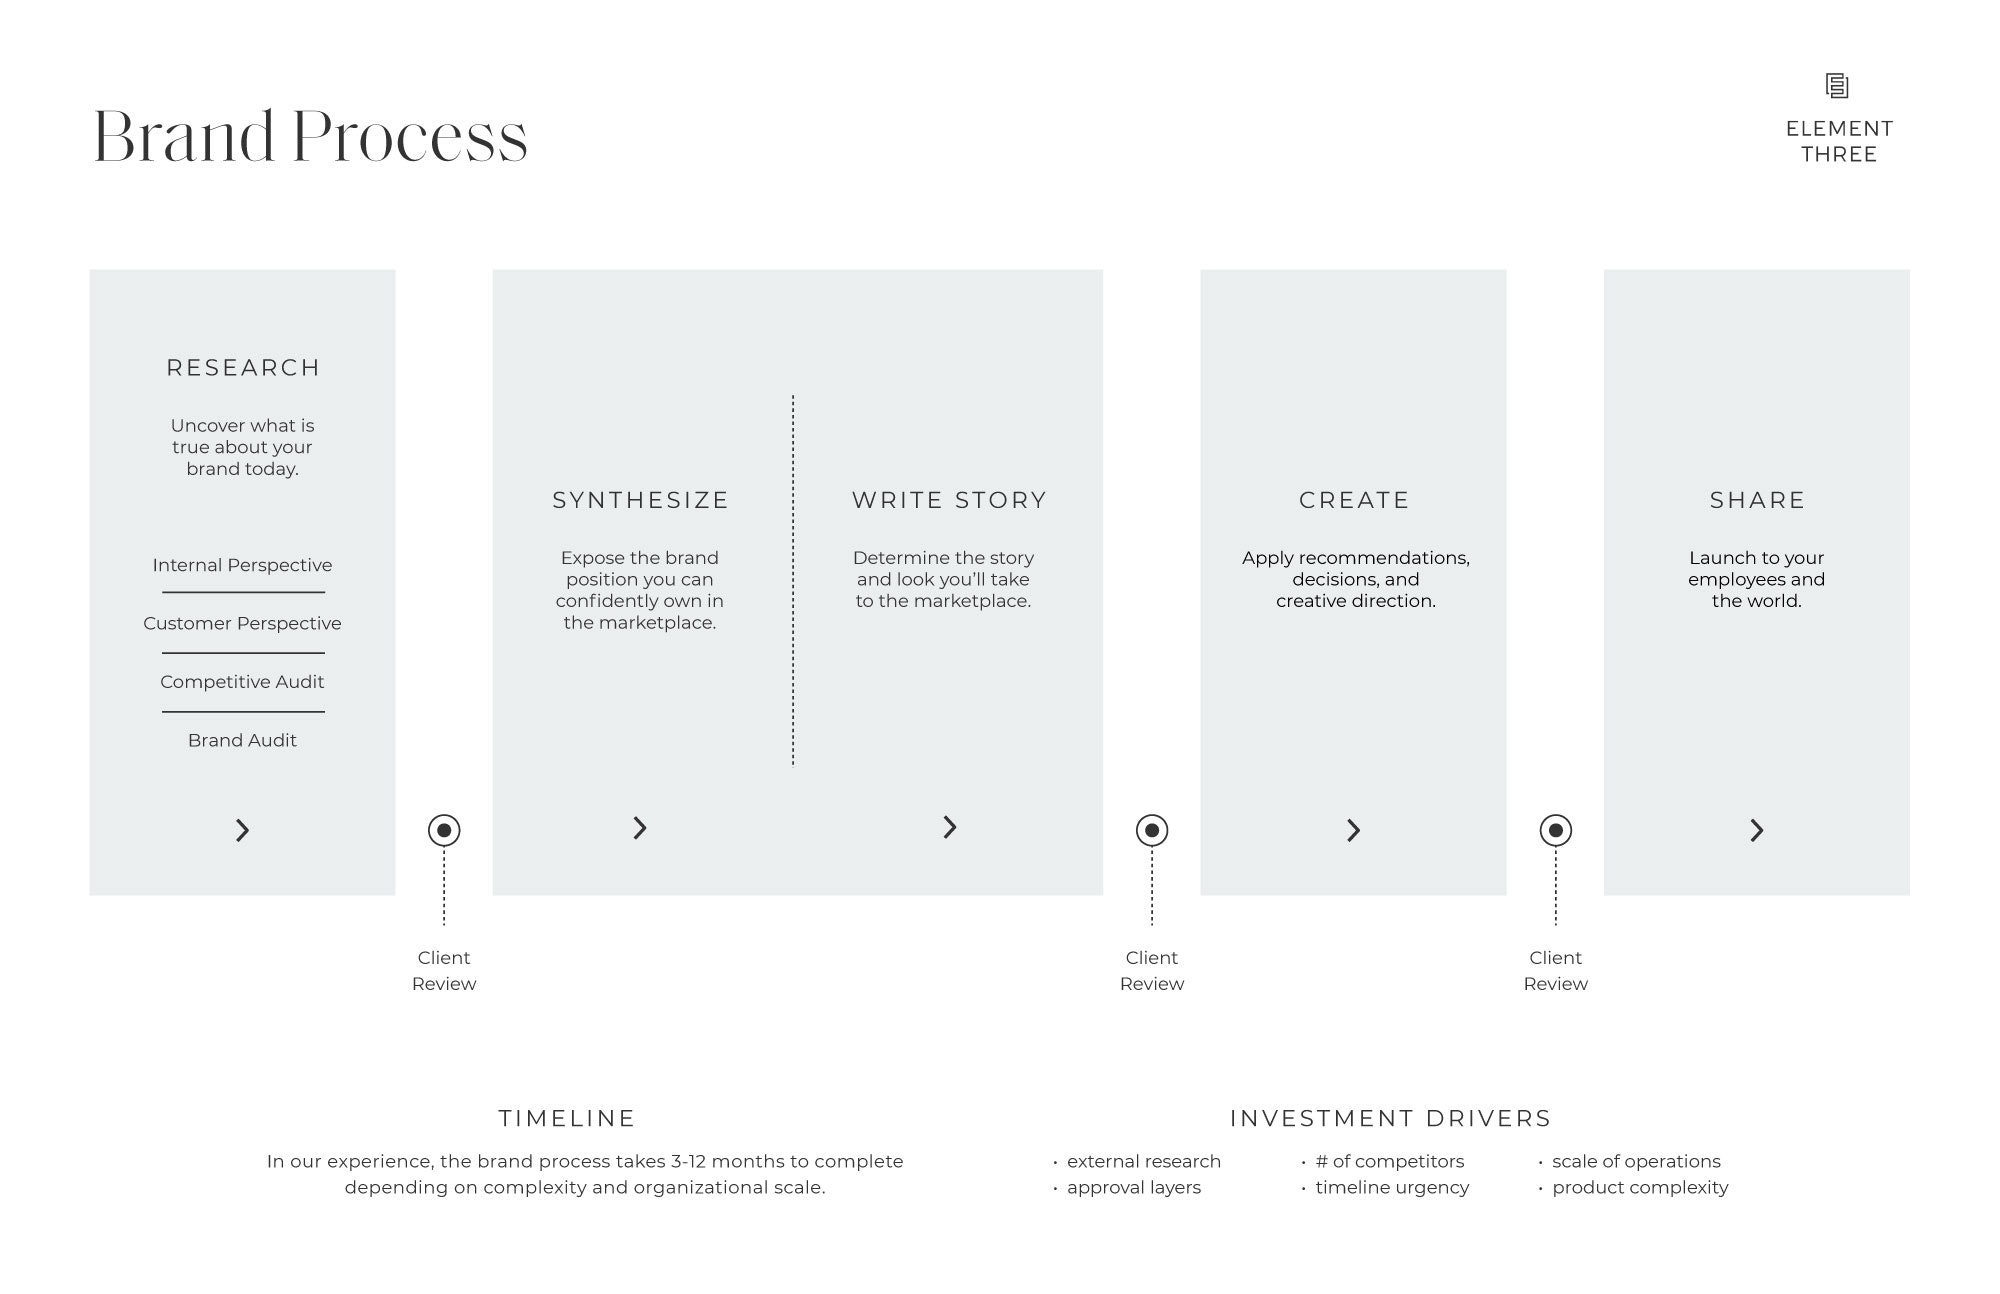 E3 Brand Process Graphic